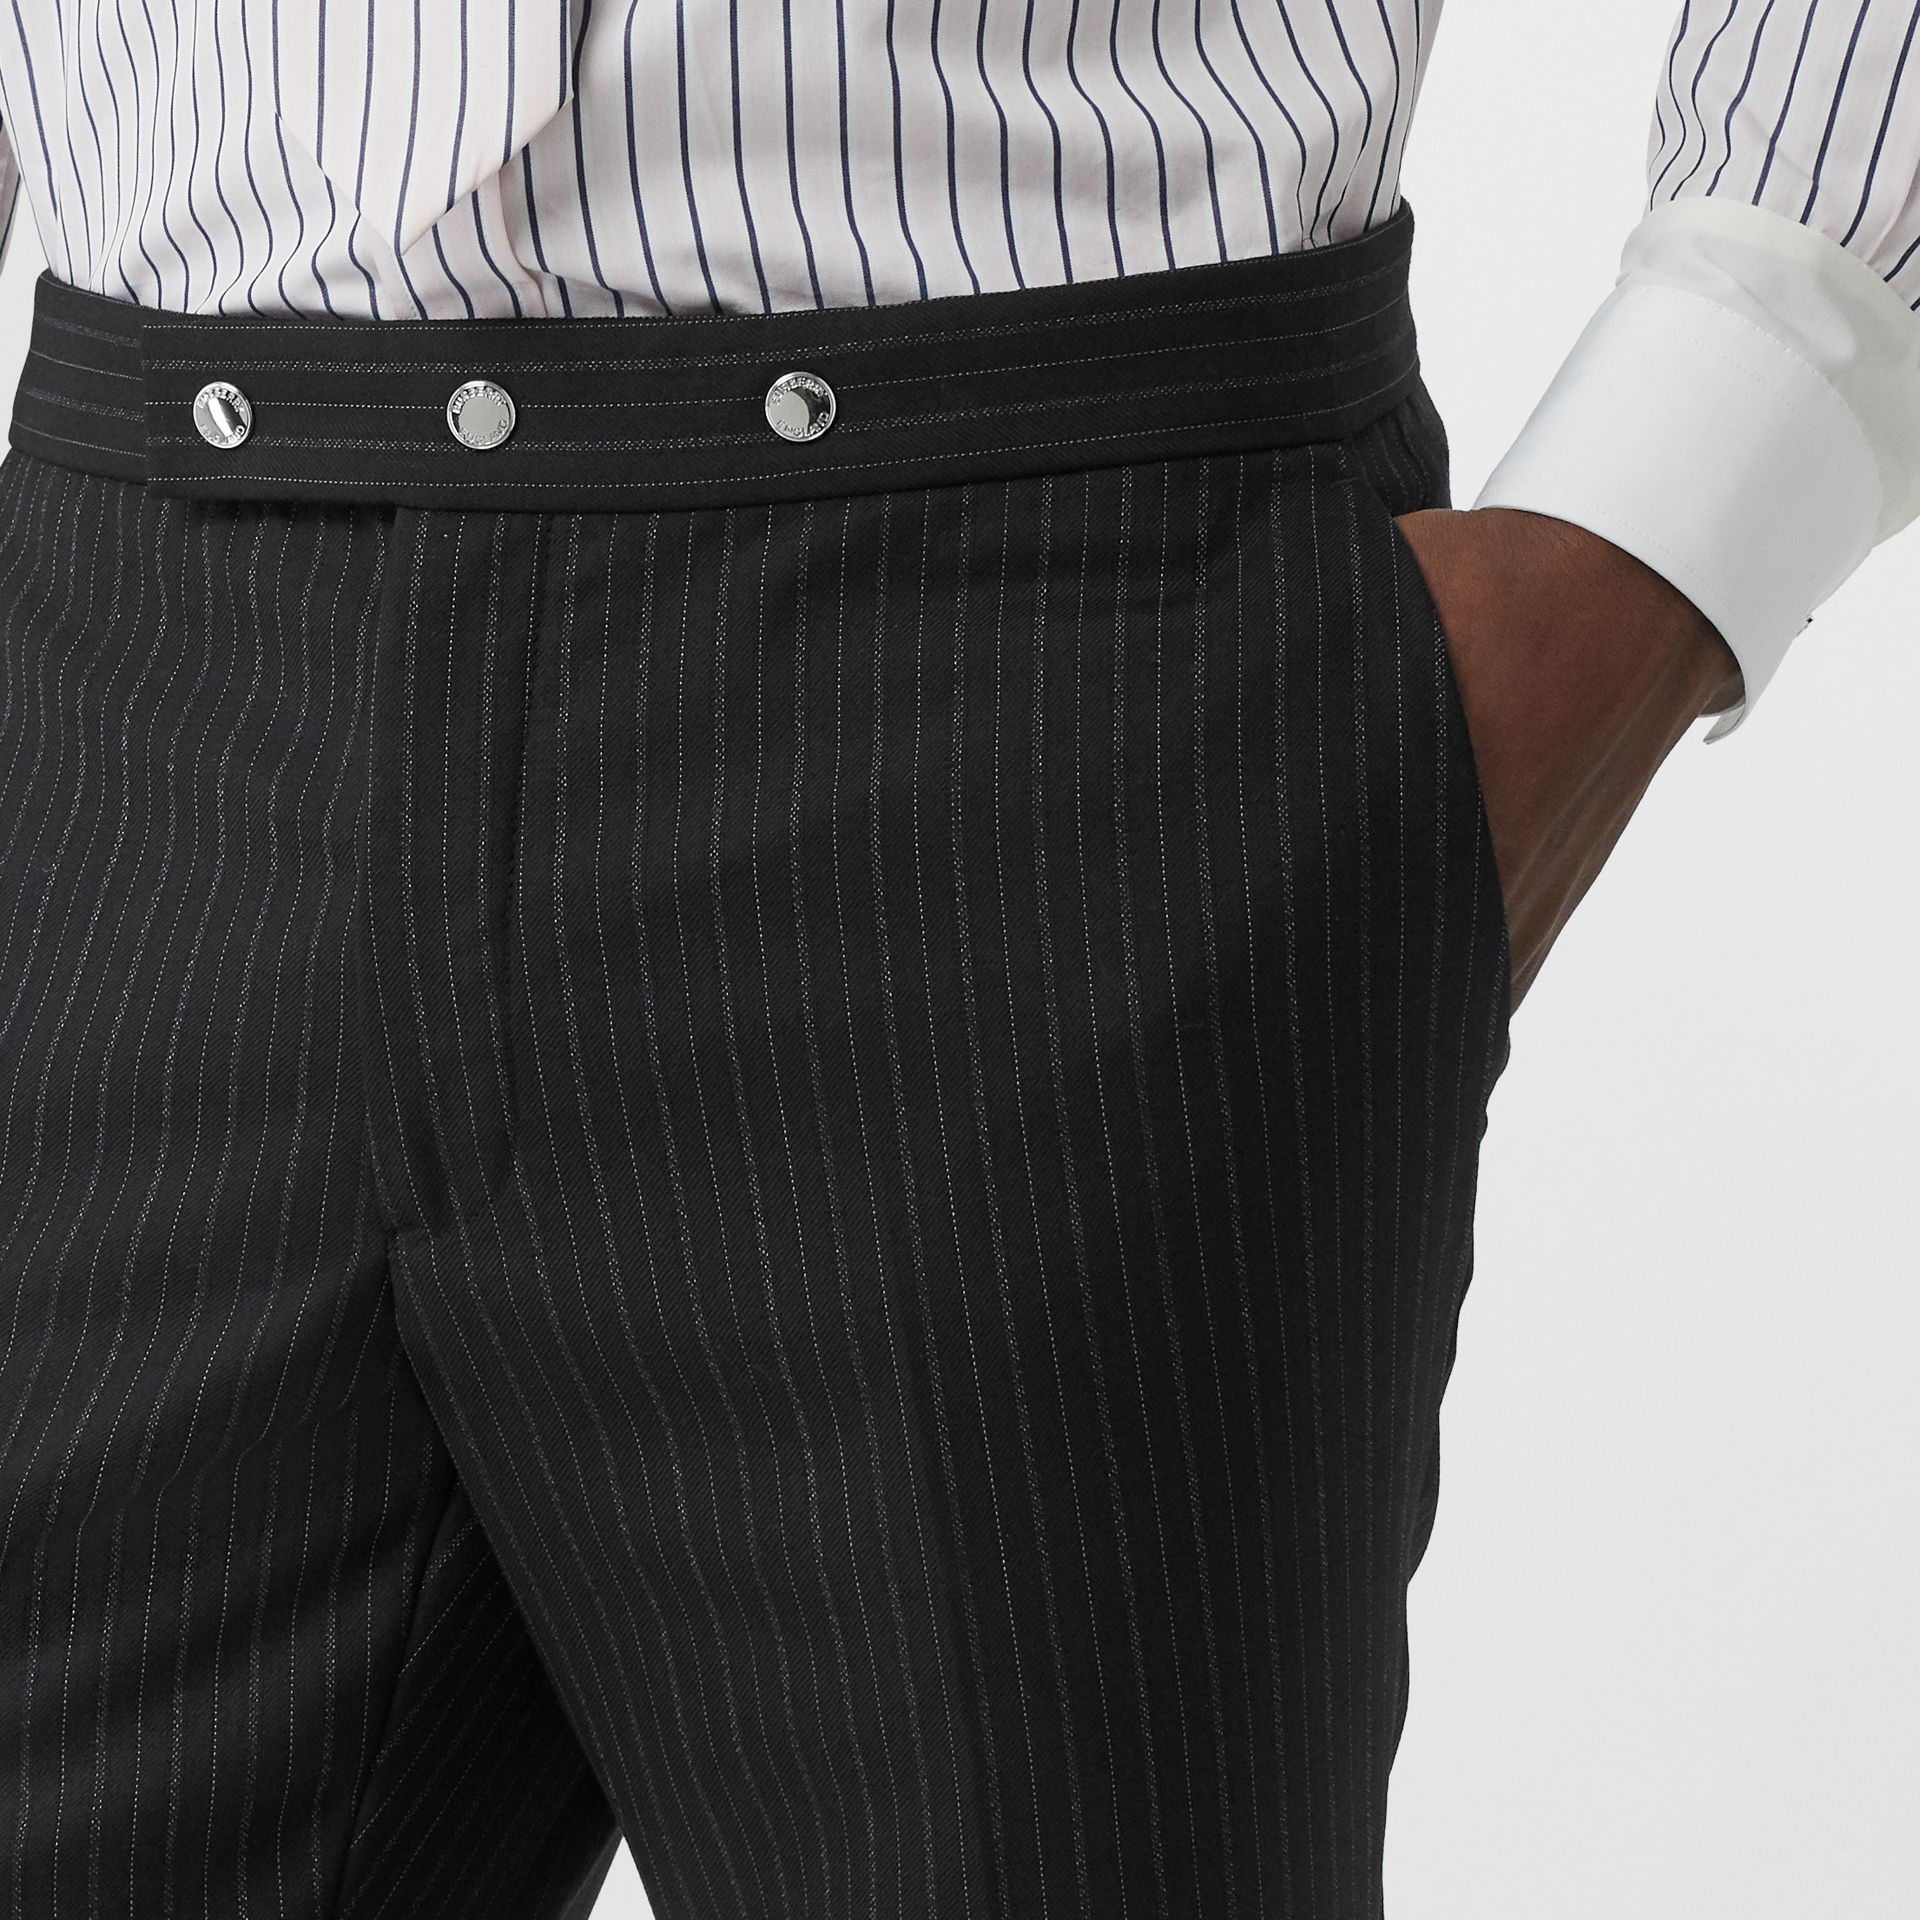 Classic Fit Pinstriped Wool Tailored Trousers in Black - Men | Burberry Hong Kong S.A.R - gallery image 5